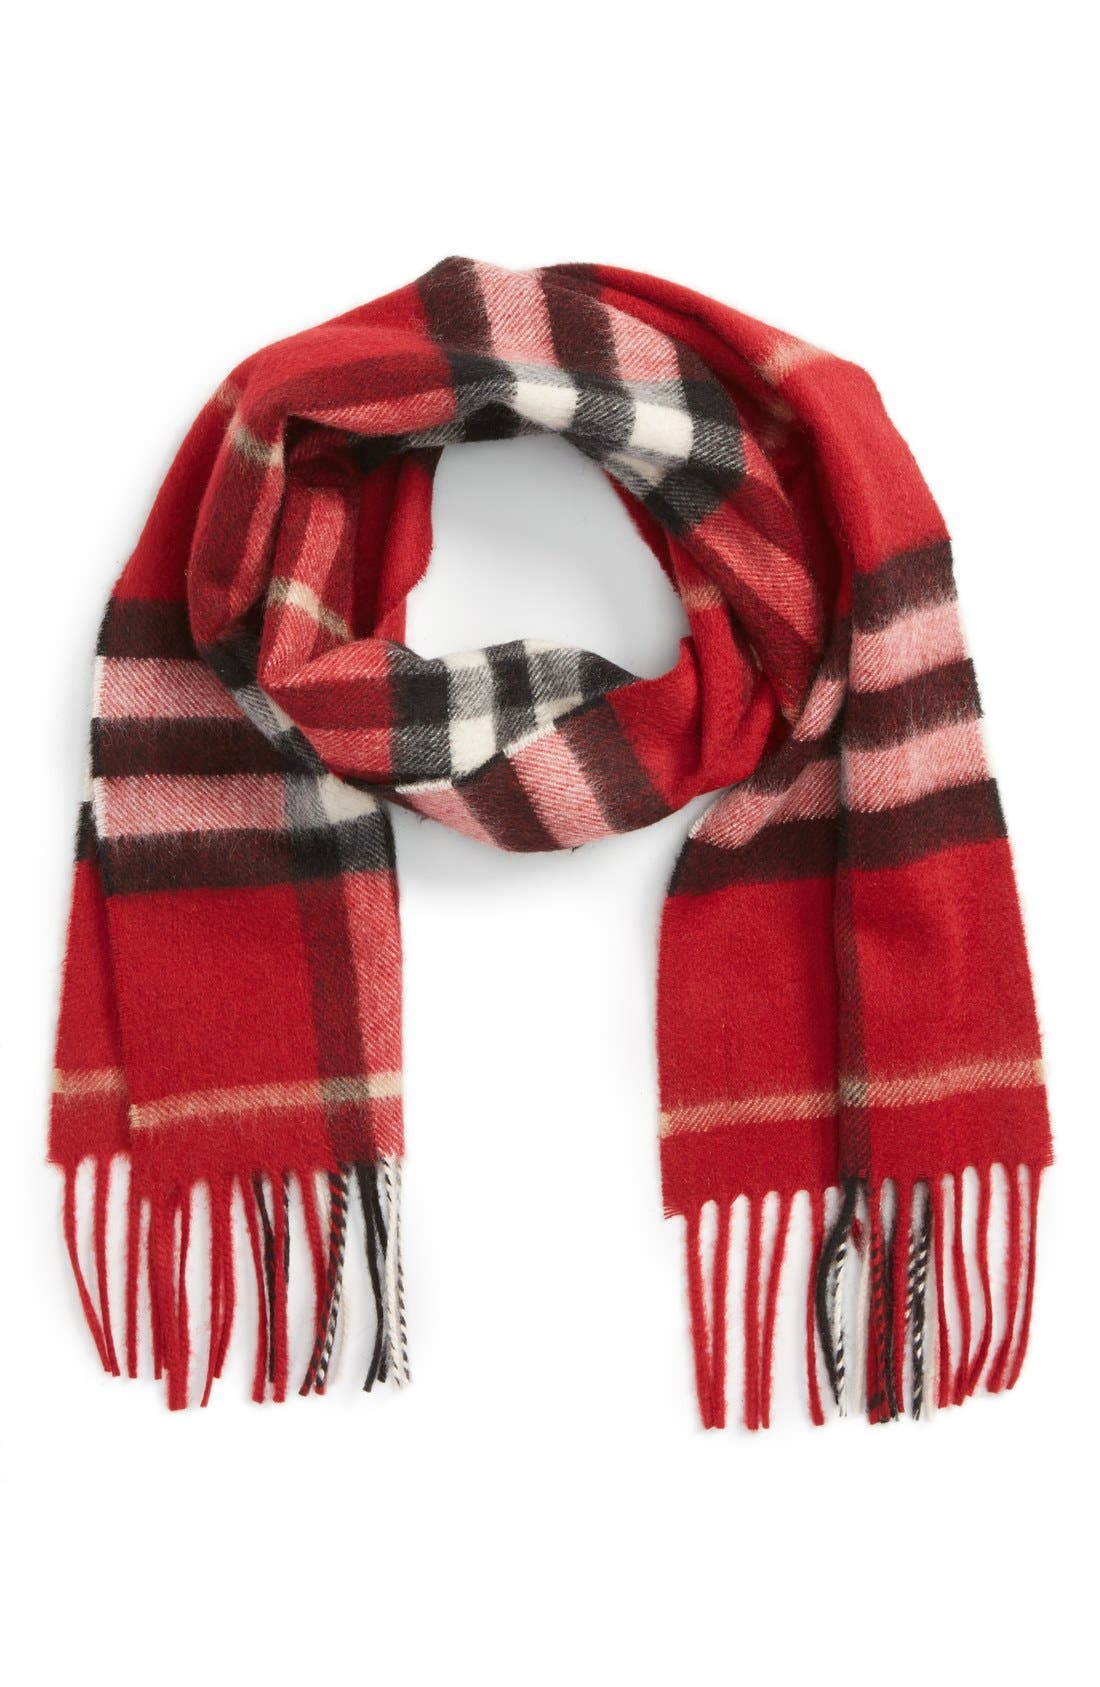 Alternate Image 1 Selected - Burberry Giant Check Cashmere Scarf (Big Girls)